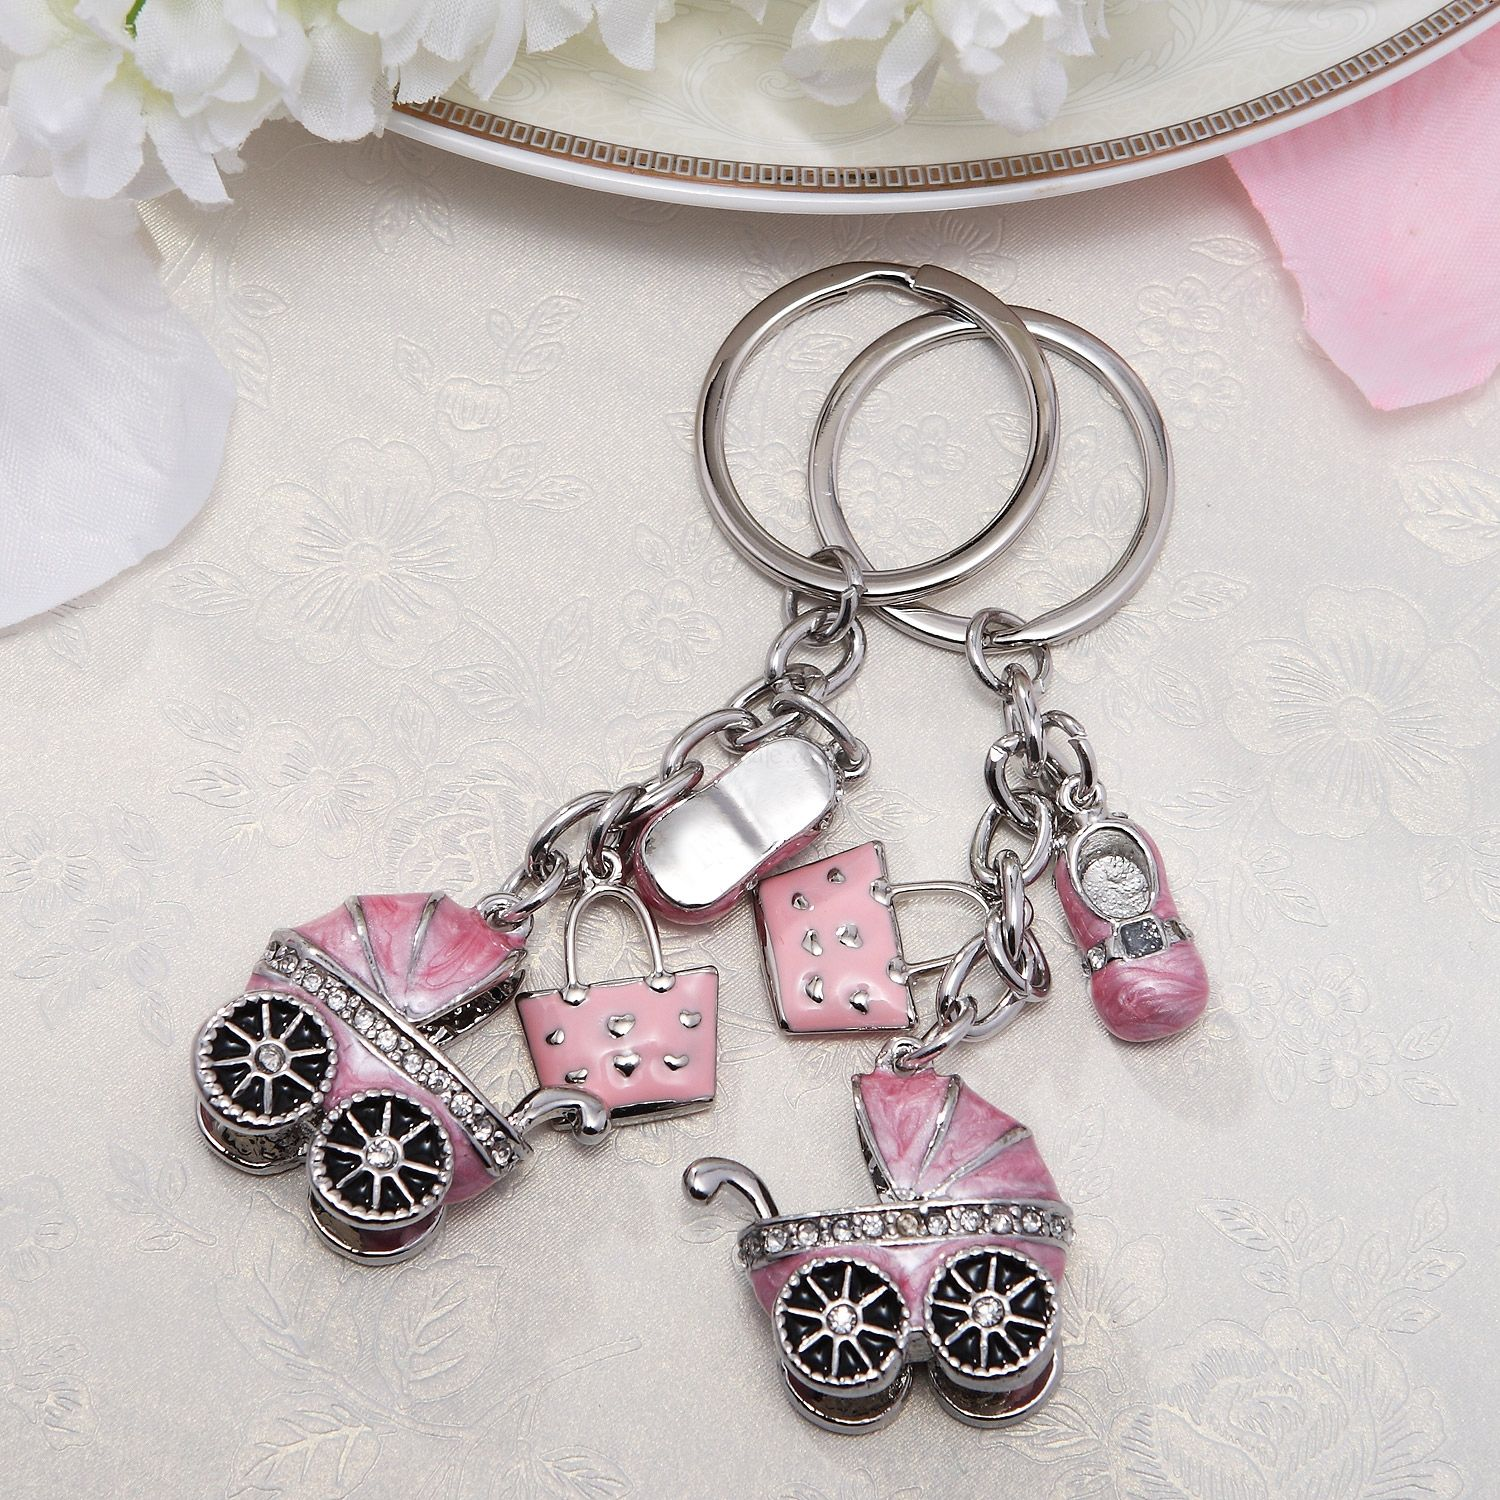 baby carriage key ring | Wedding Favors | Pinterest | Baby carriage ...